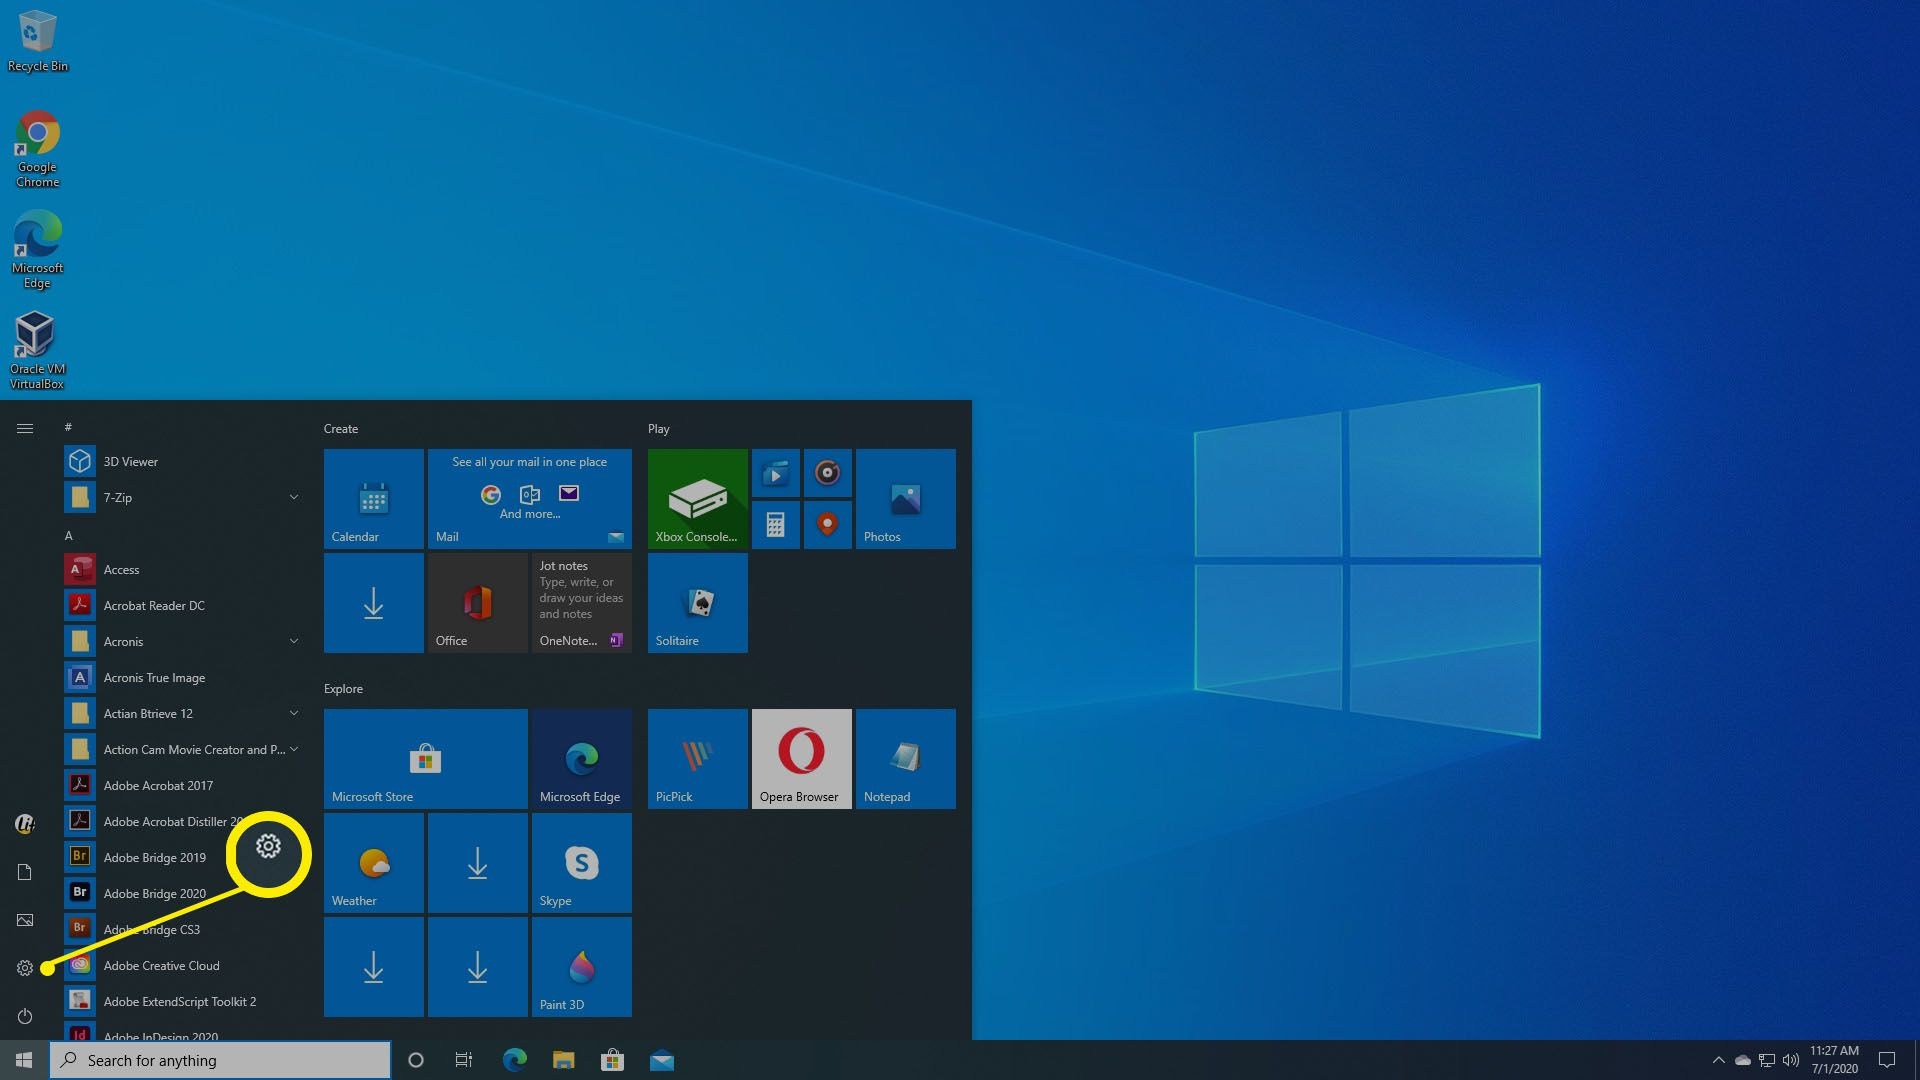 Open the Start Menu, then select the gear to open the Windows Settings.